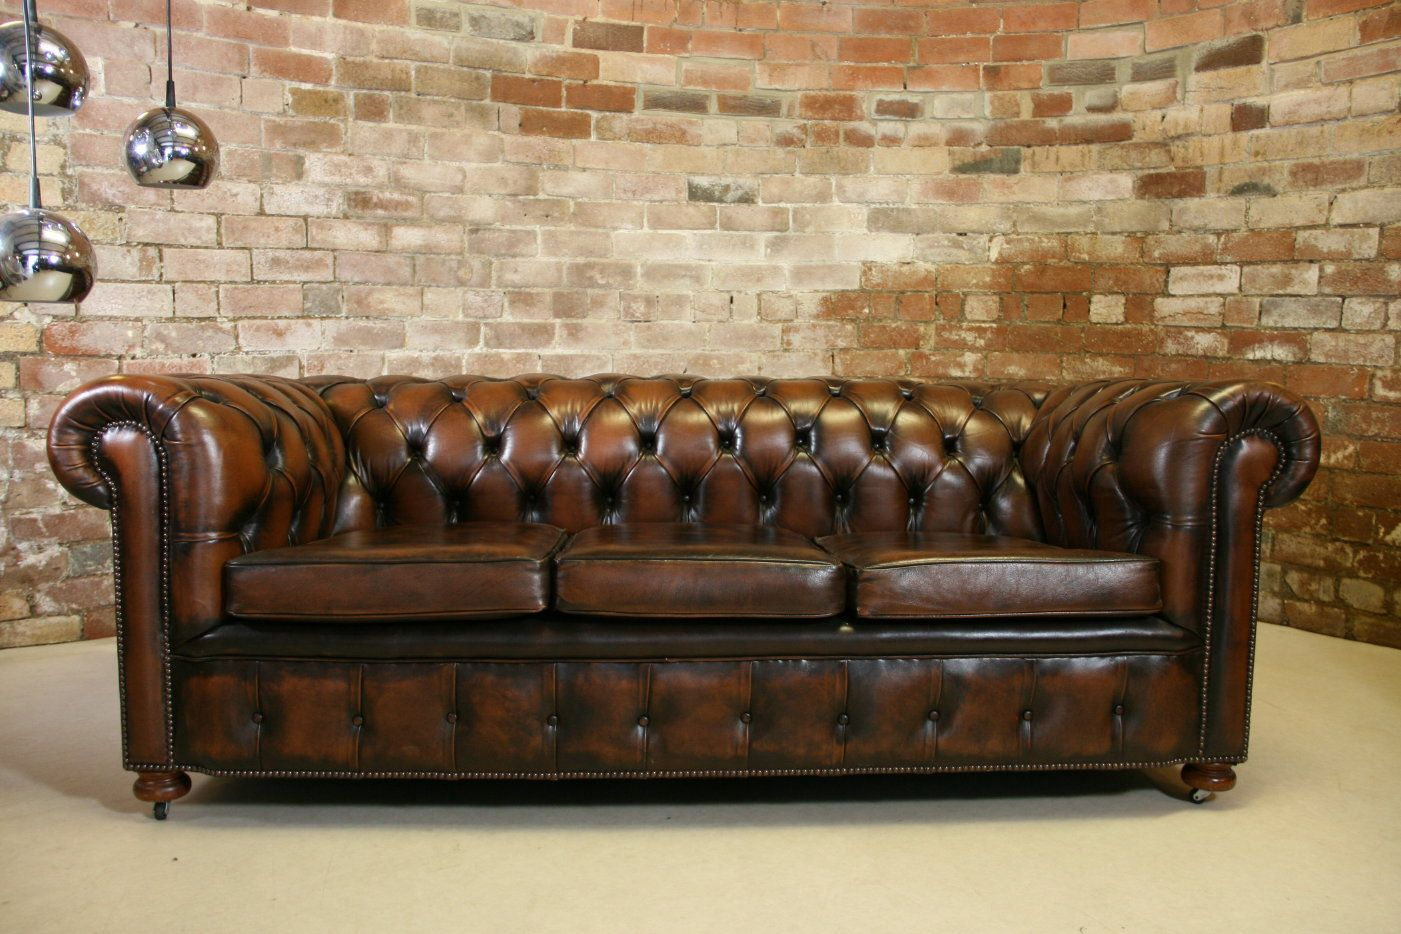 Sofa Couch Or Chesterfield Vintage Chesterfield Antique Brown Leather 3 Seater Sofa Retro